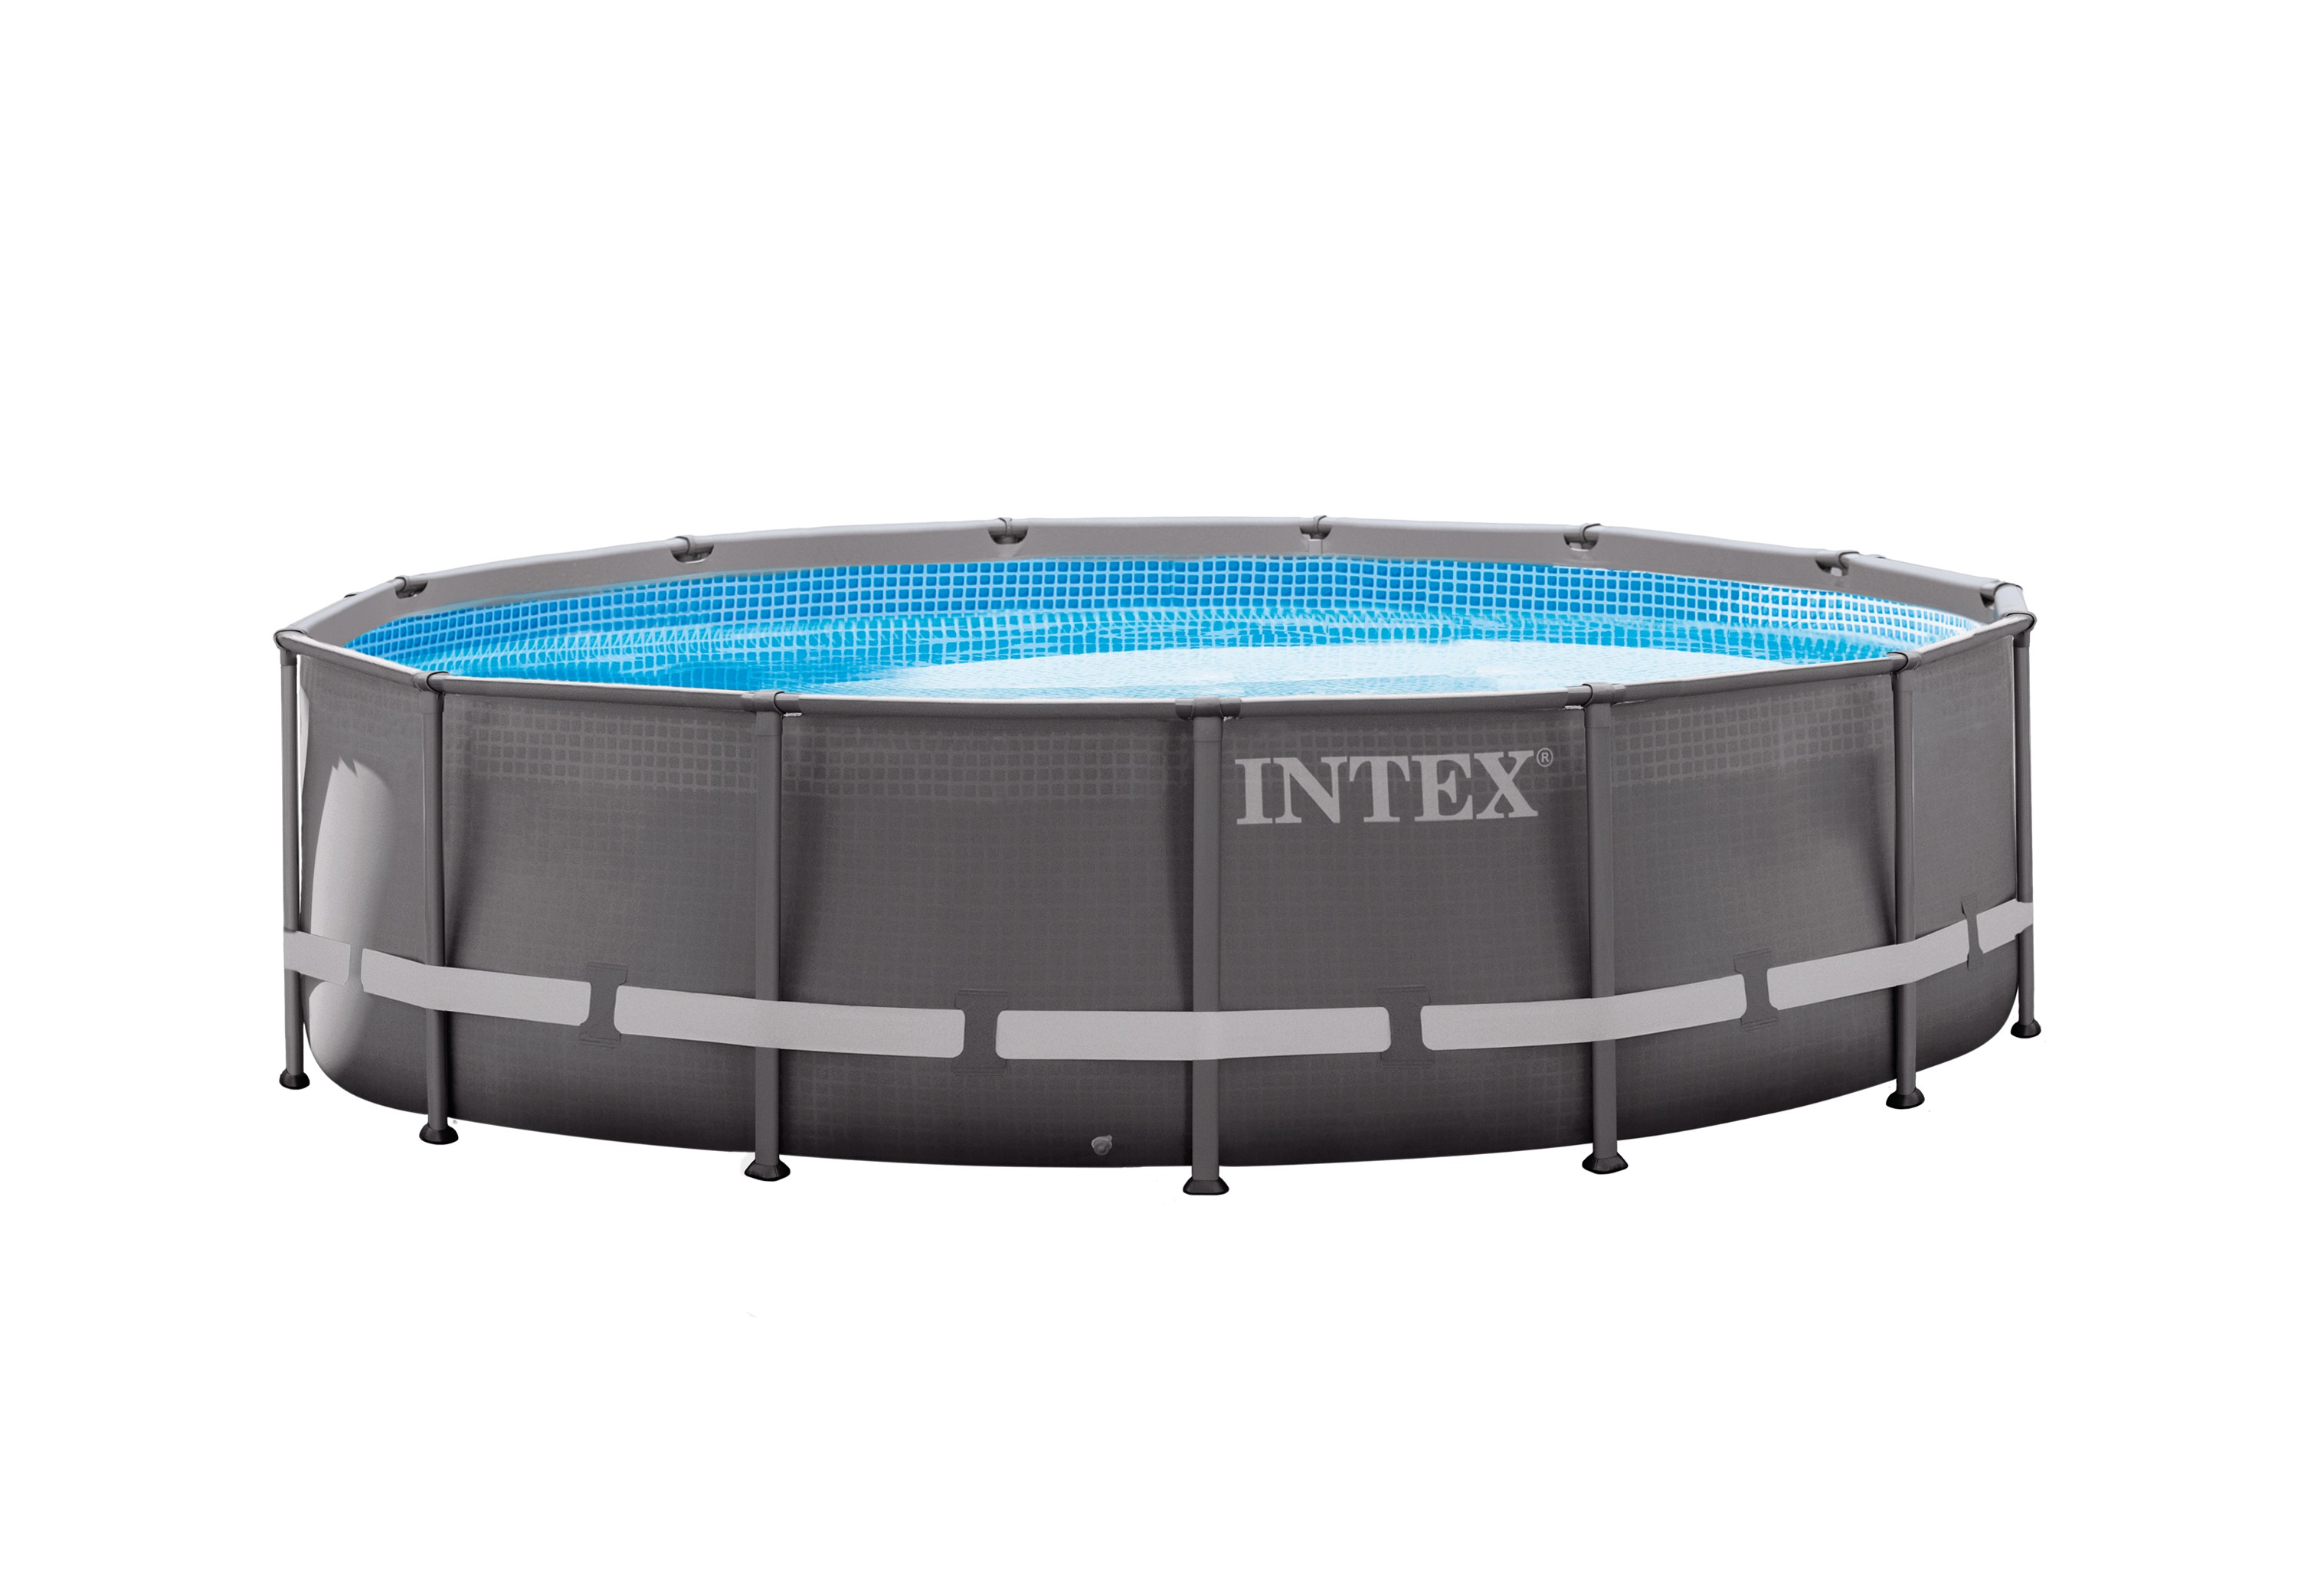 Sandfilteranlage Pool 25000 Liter Intex Ultra Frame Pool 427x107 Cm Set Met Filterpomp